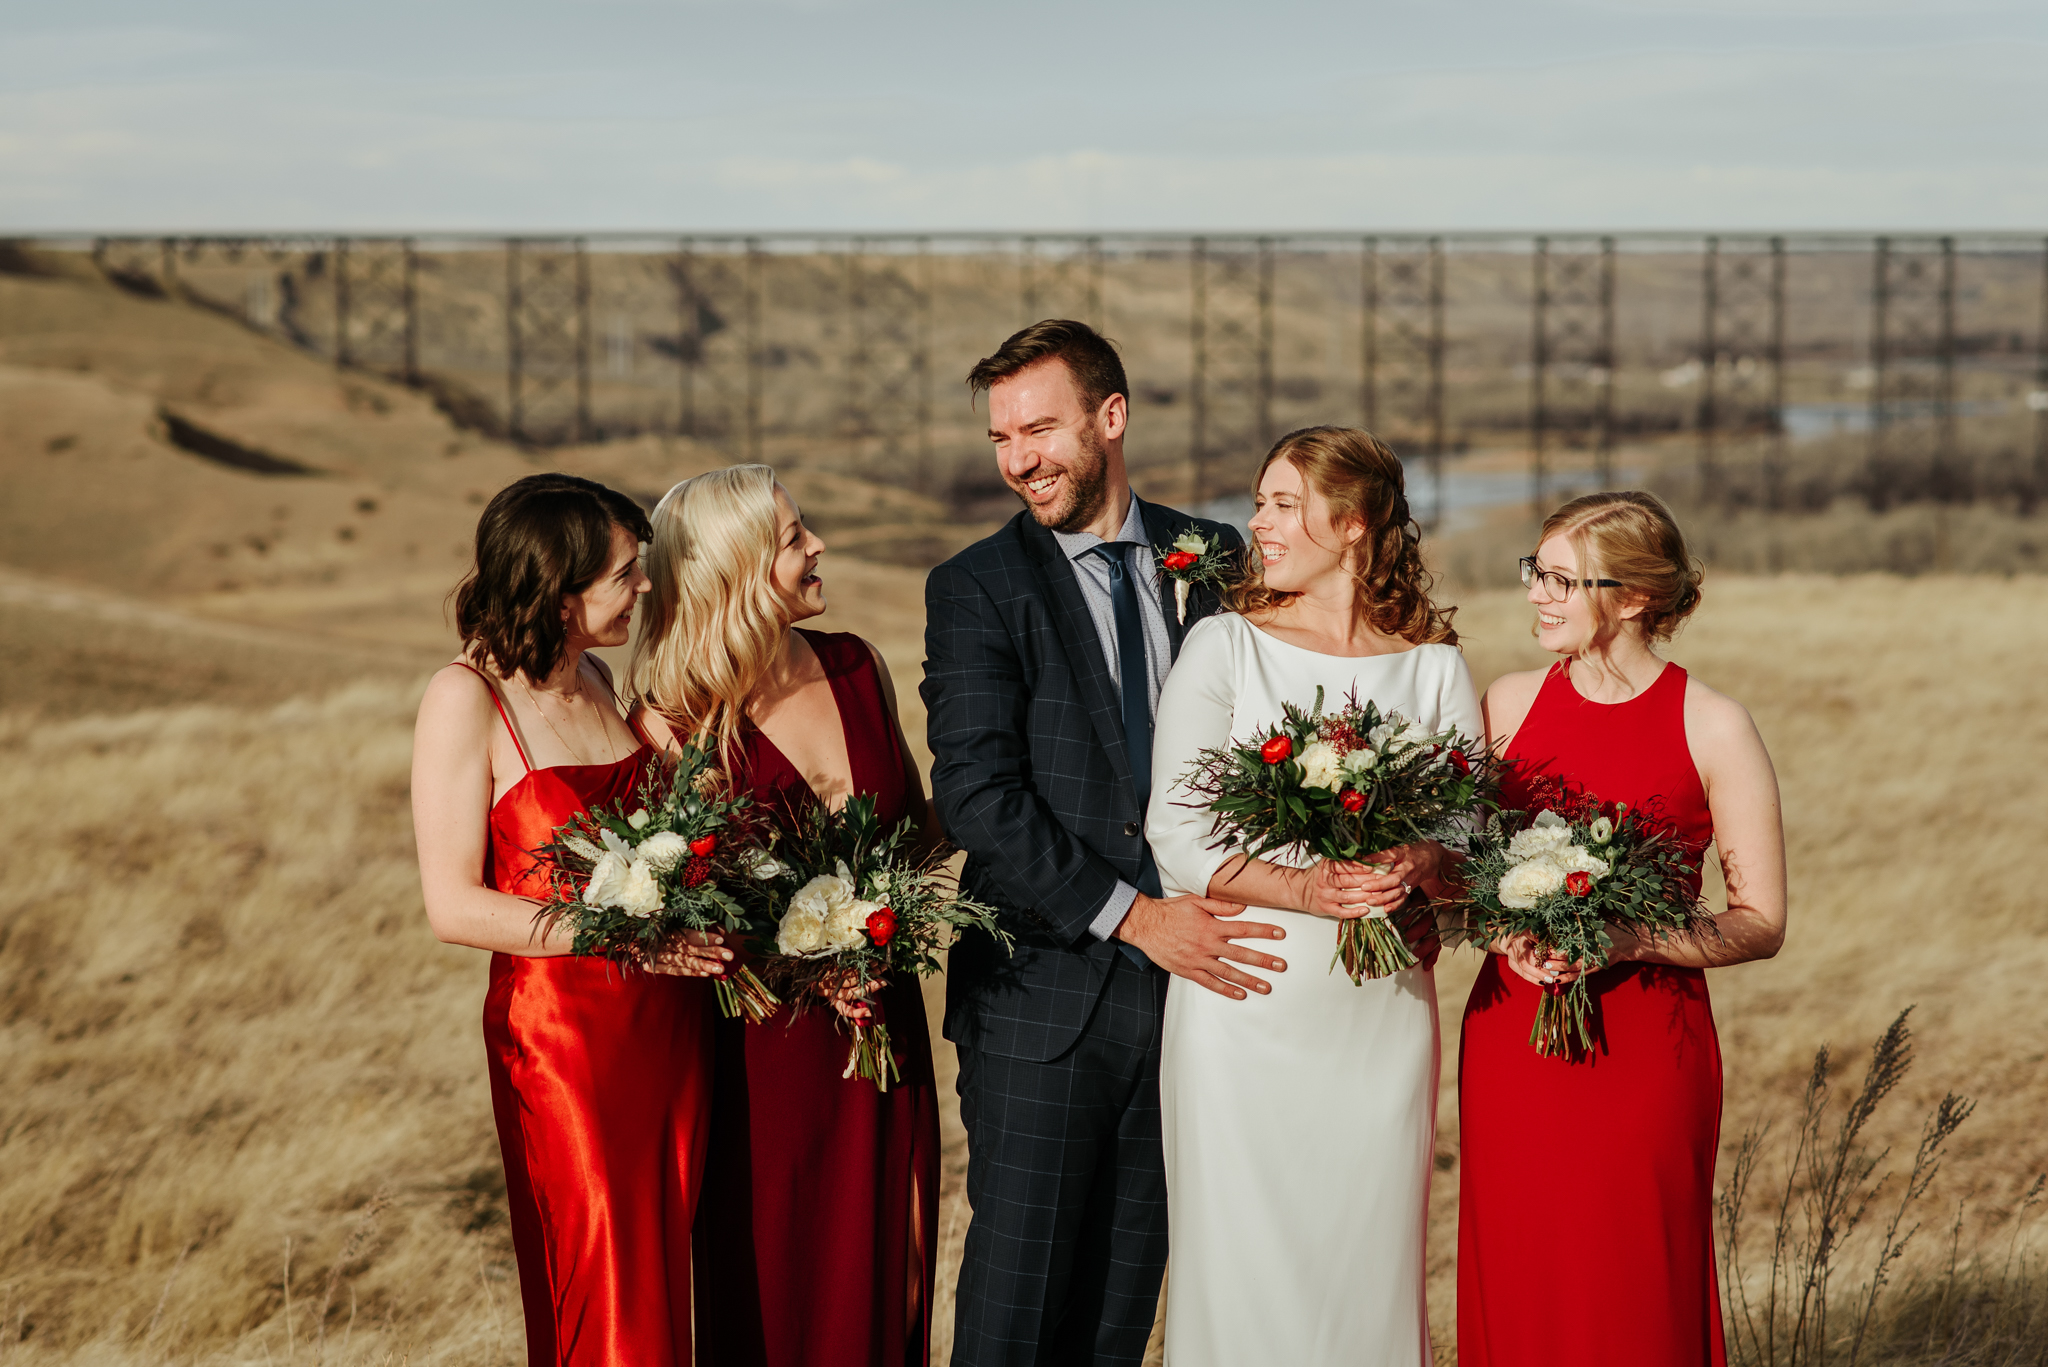 lethbridge-wedding-photographer-love-and-be-loved-photography-kris-amy-paradise-canyon-image-picture-photo-22.jpg